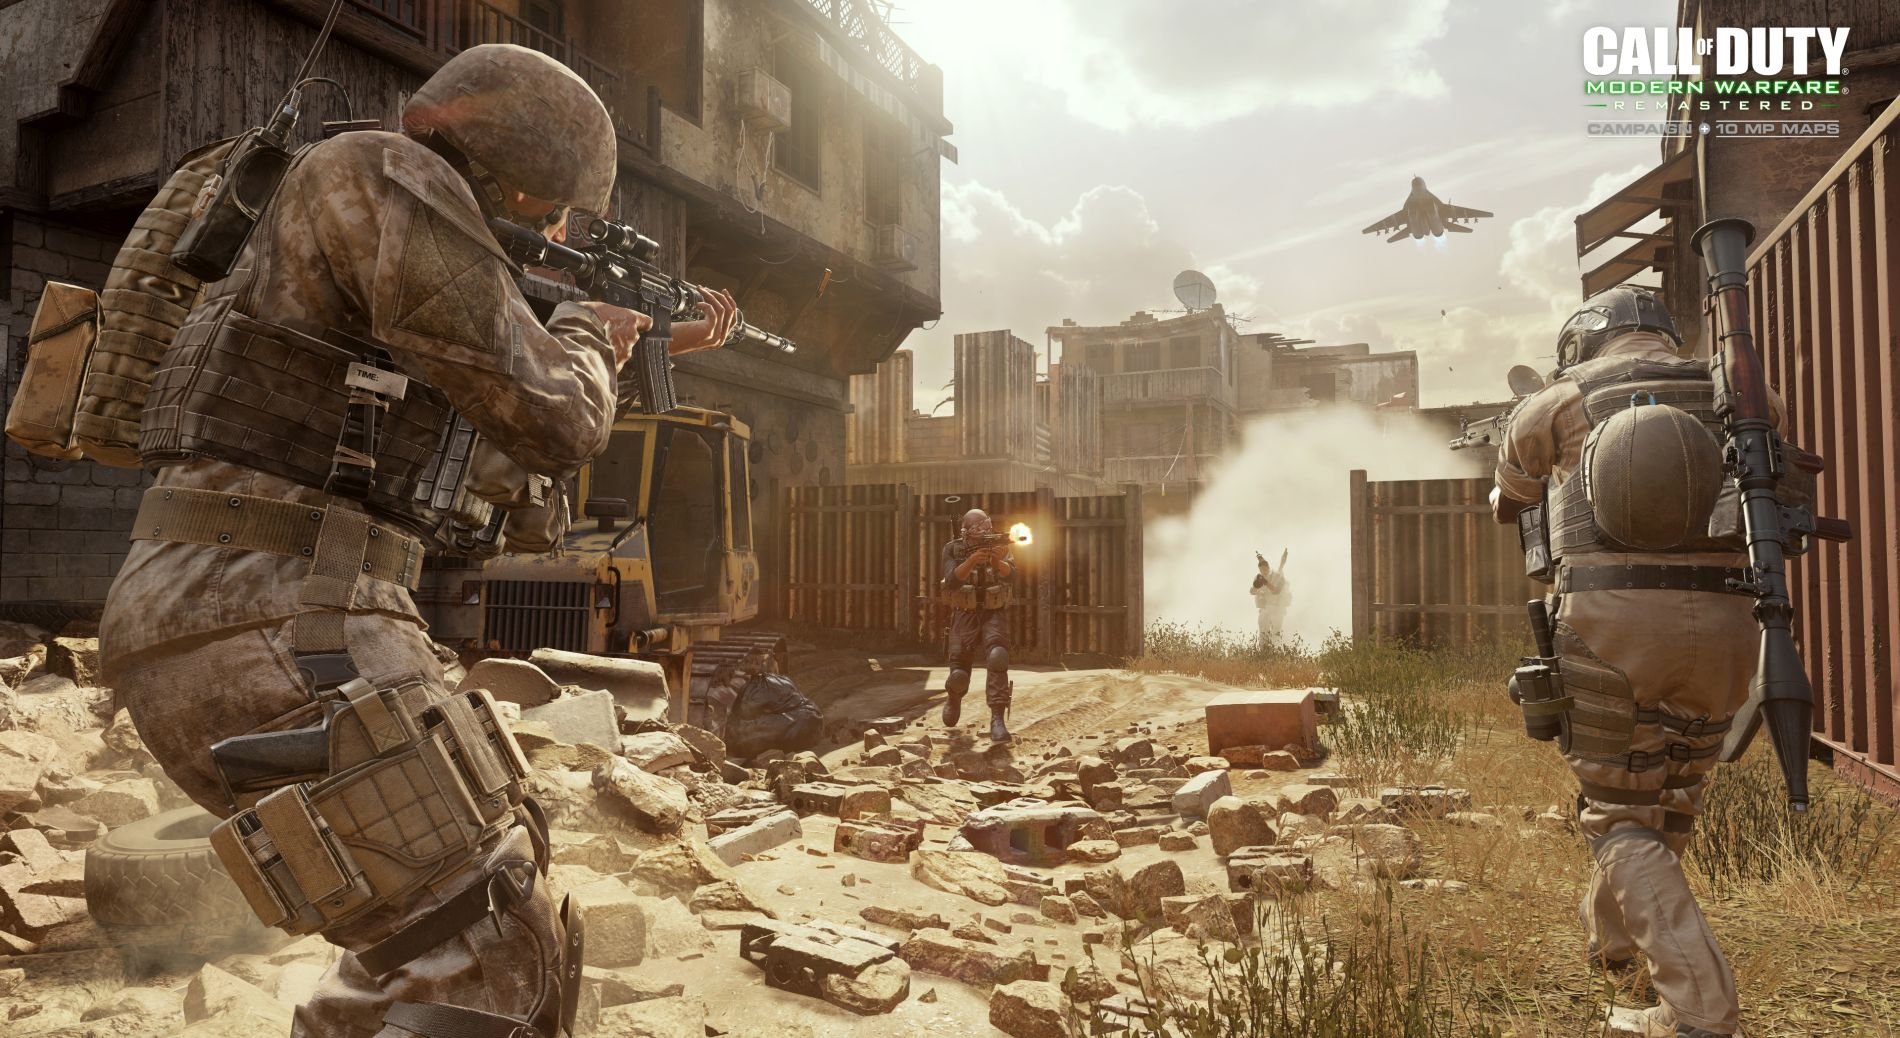 Call of Duty 4: Modern Warfare Remastered contains all 16 original Call Of Duty Maps Multiplayer on